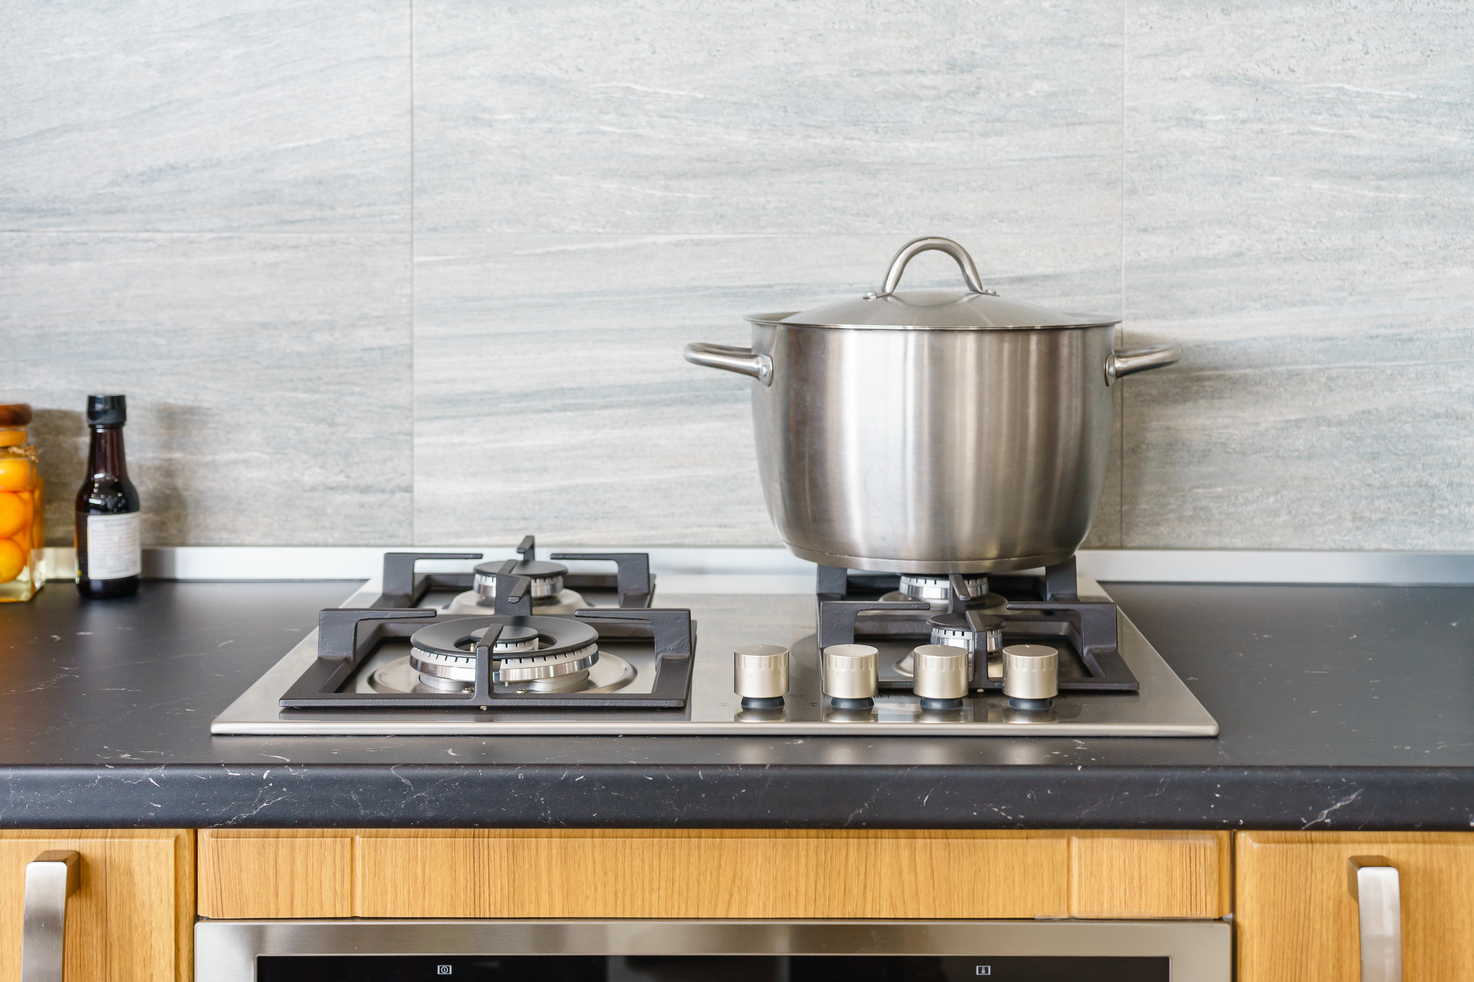 stainless steel pot on top of stove